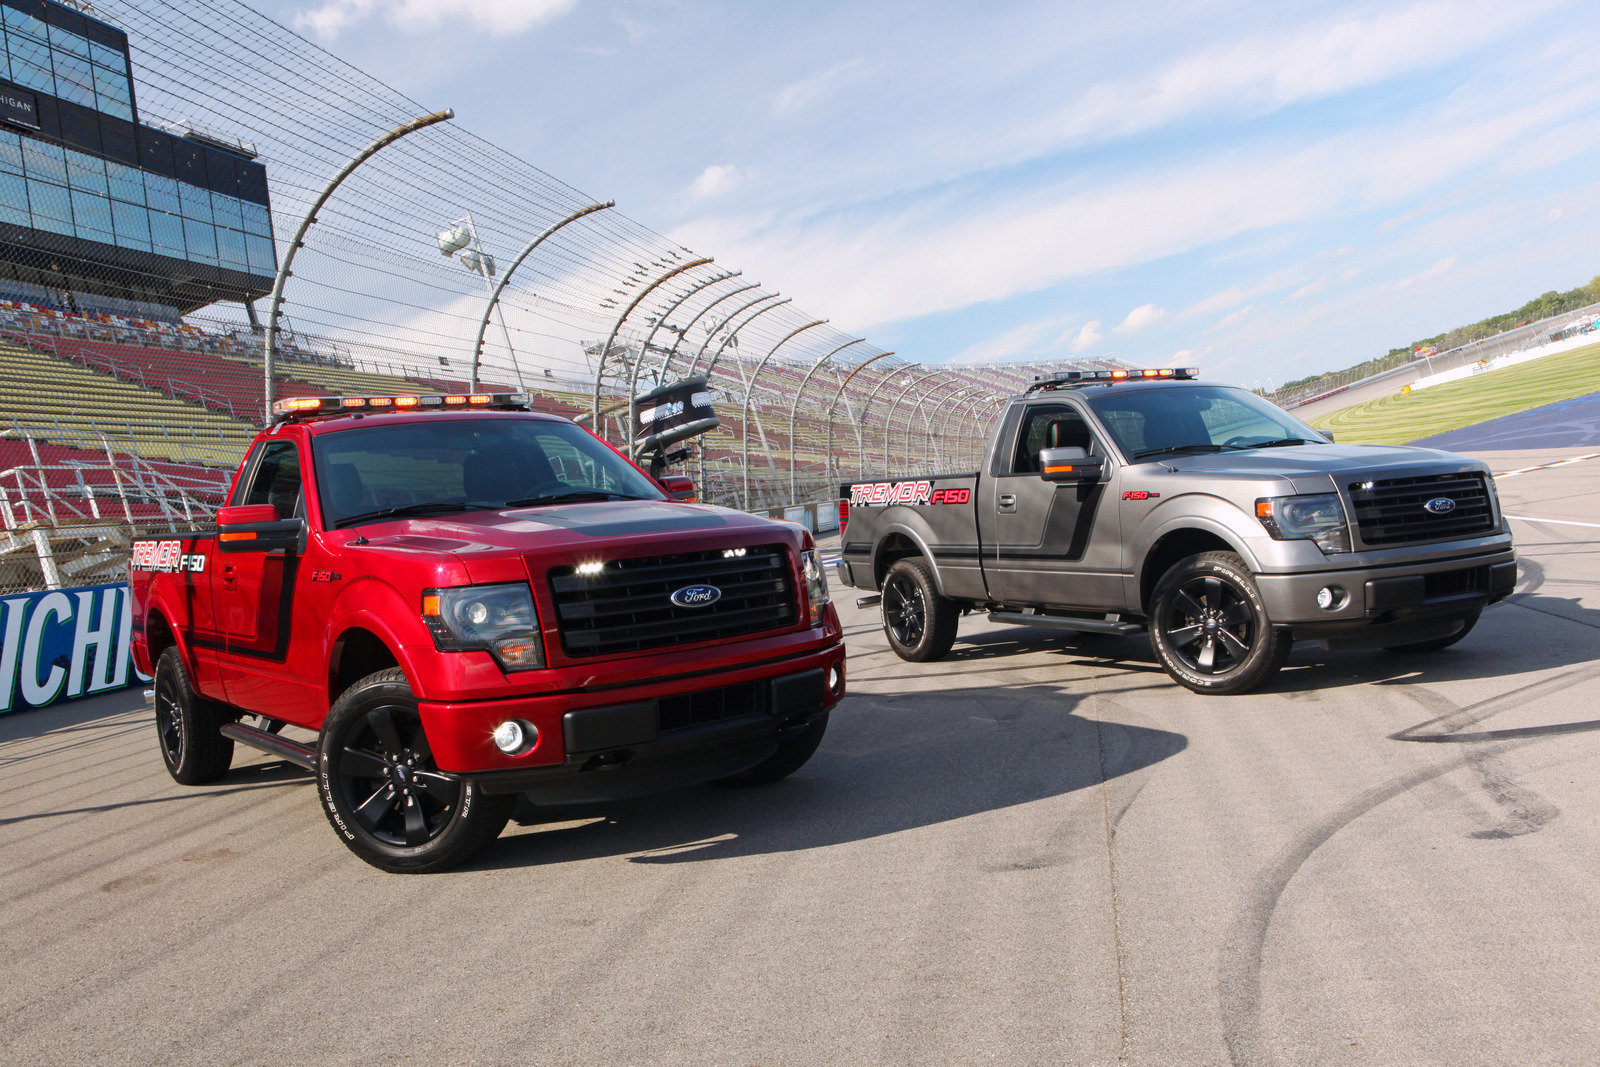 2014 ford f 150 tremor pace truck picture 518694 car review top speed. Black Bedroom Furniture Sets. Home Design Ideas